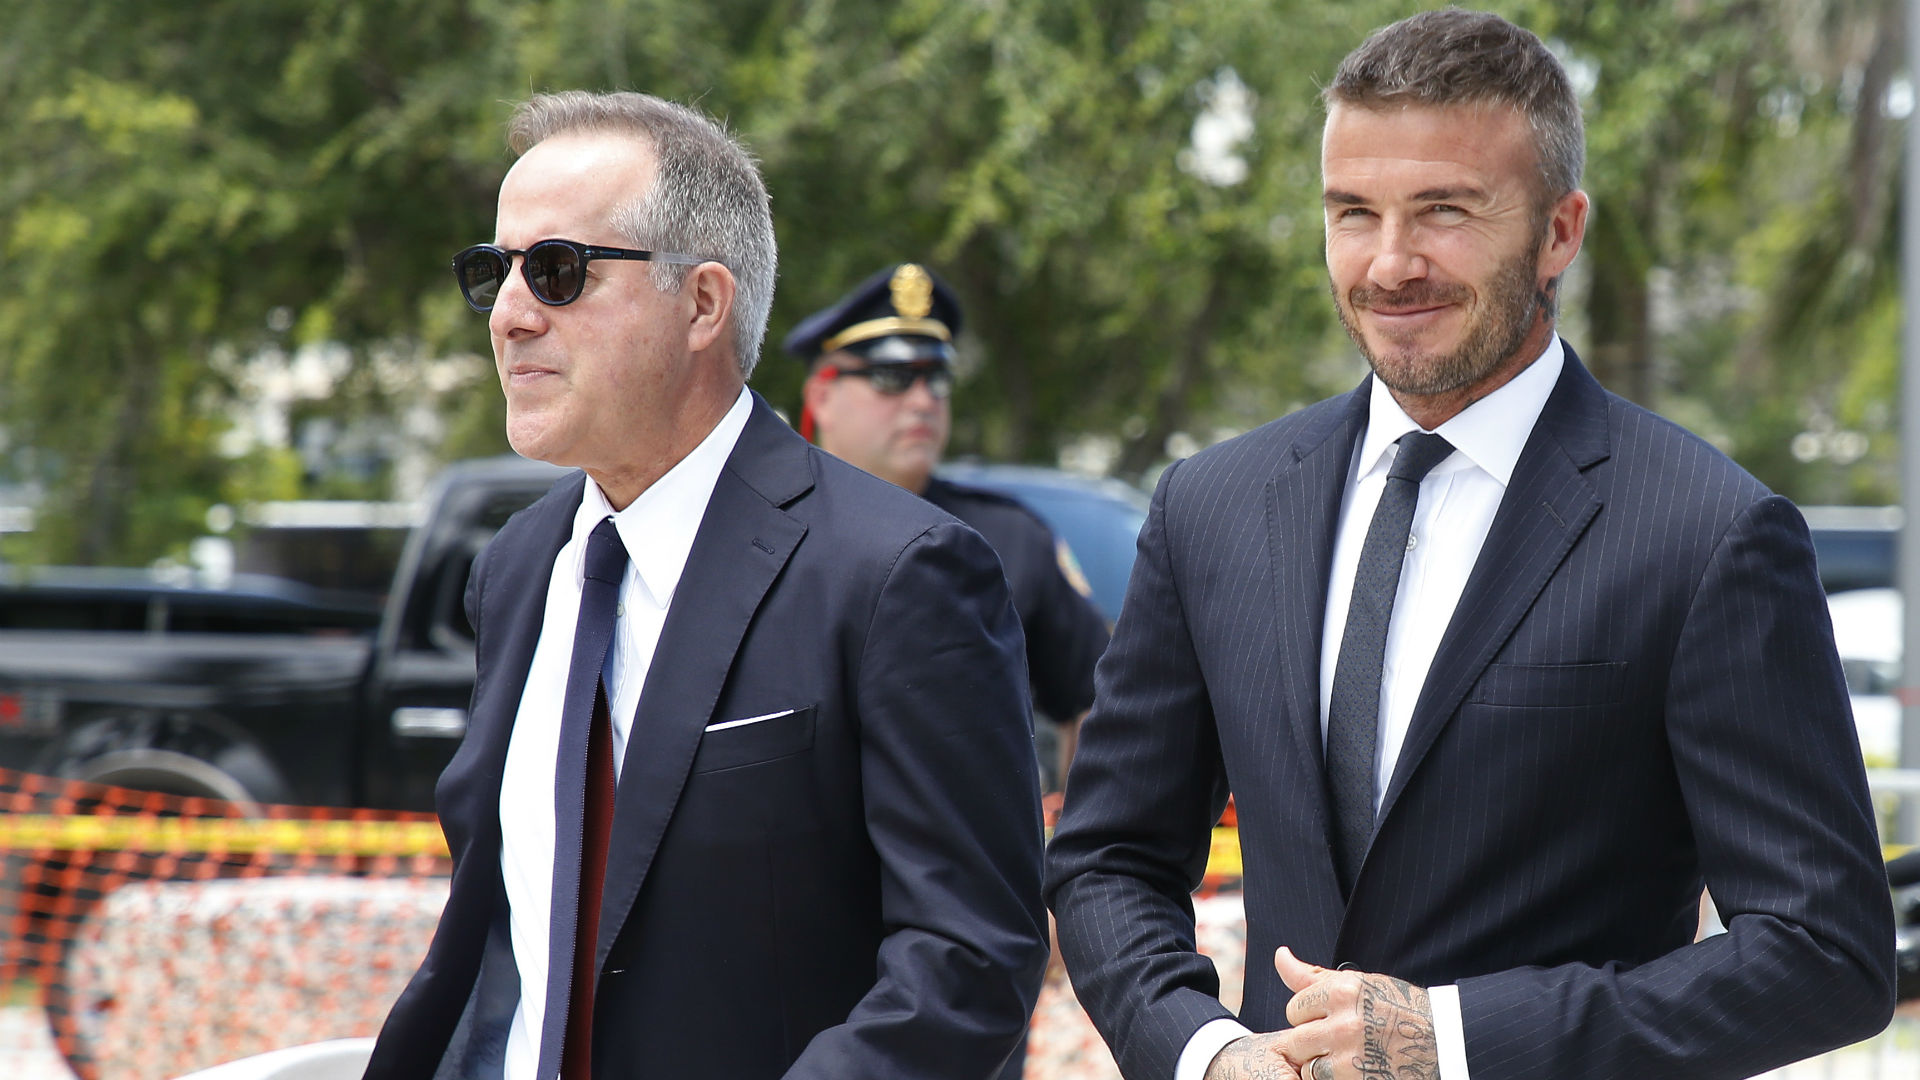 Miami voters endorsed David Beckham's stadium plan for future MLS team